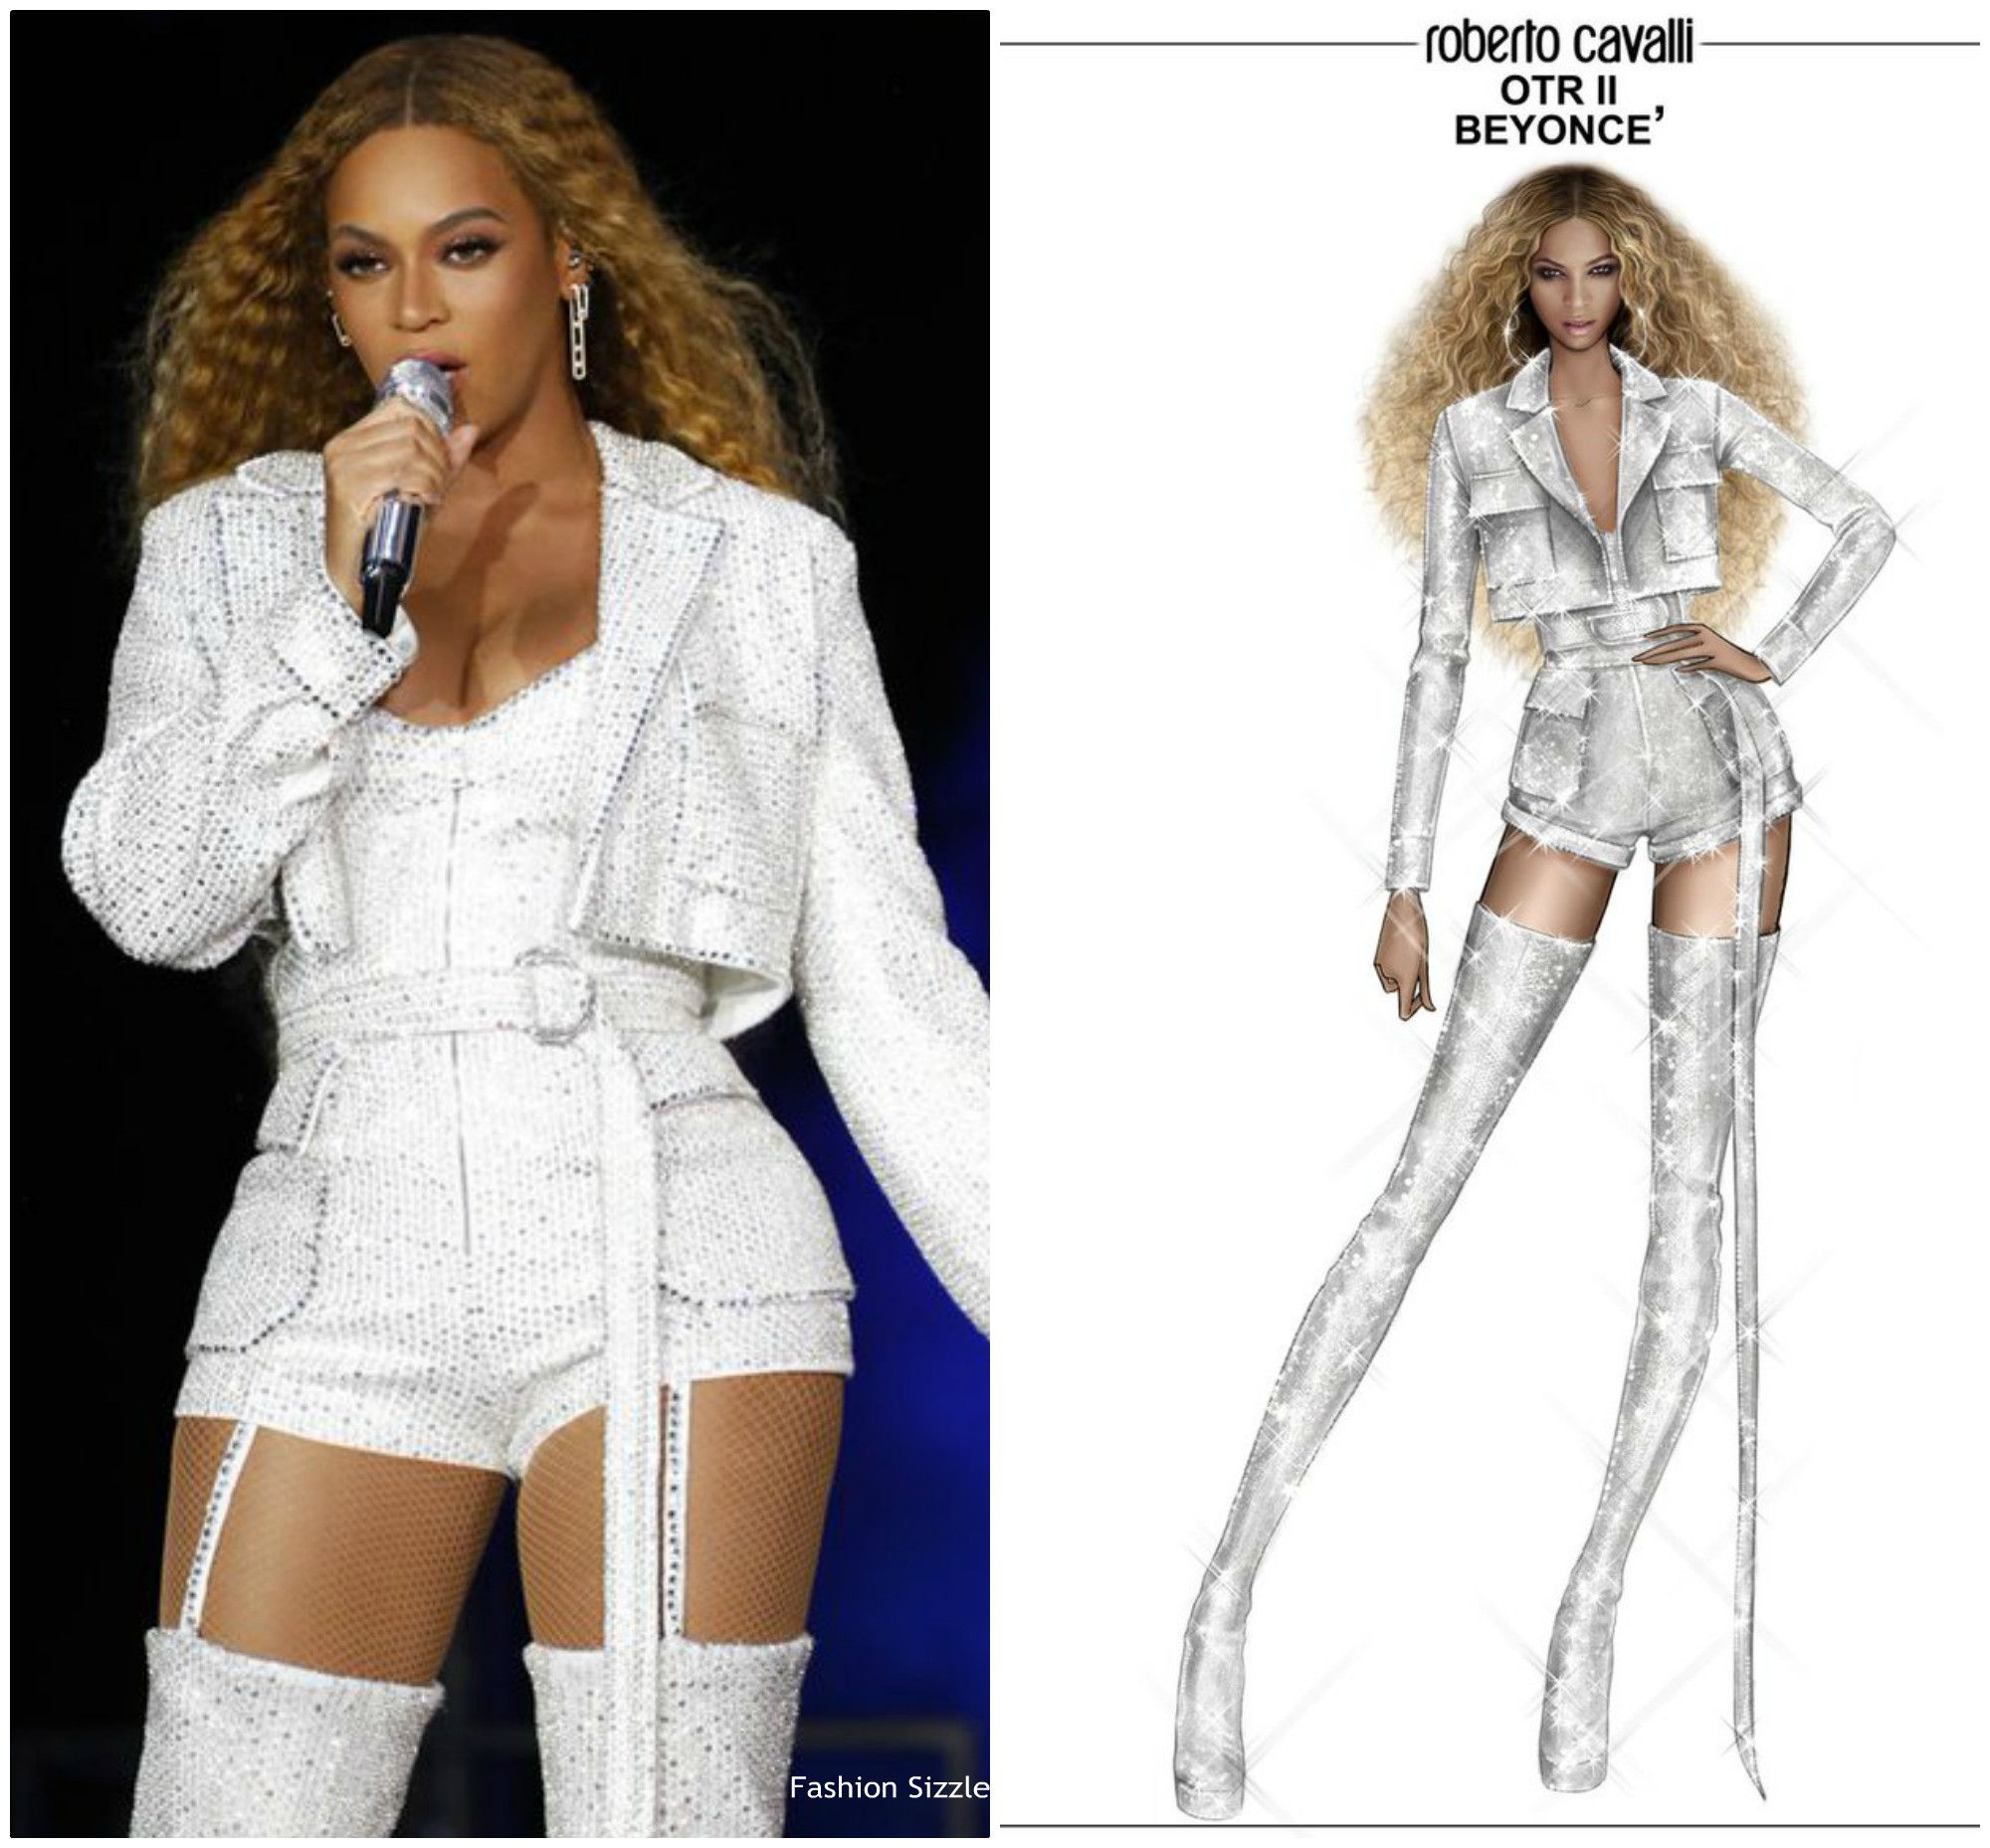 beyonce-knowles-in-roberto-cavalli-on-the-ruun-11-tour-milan